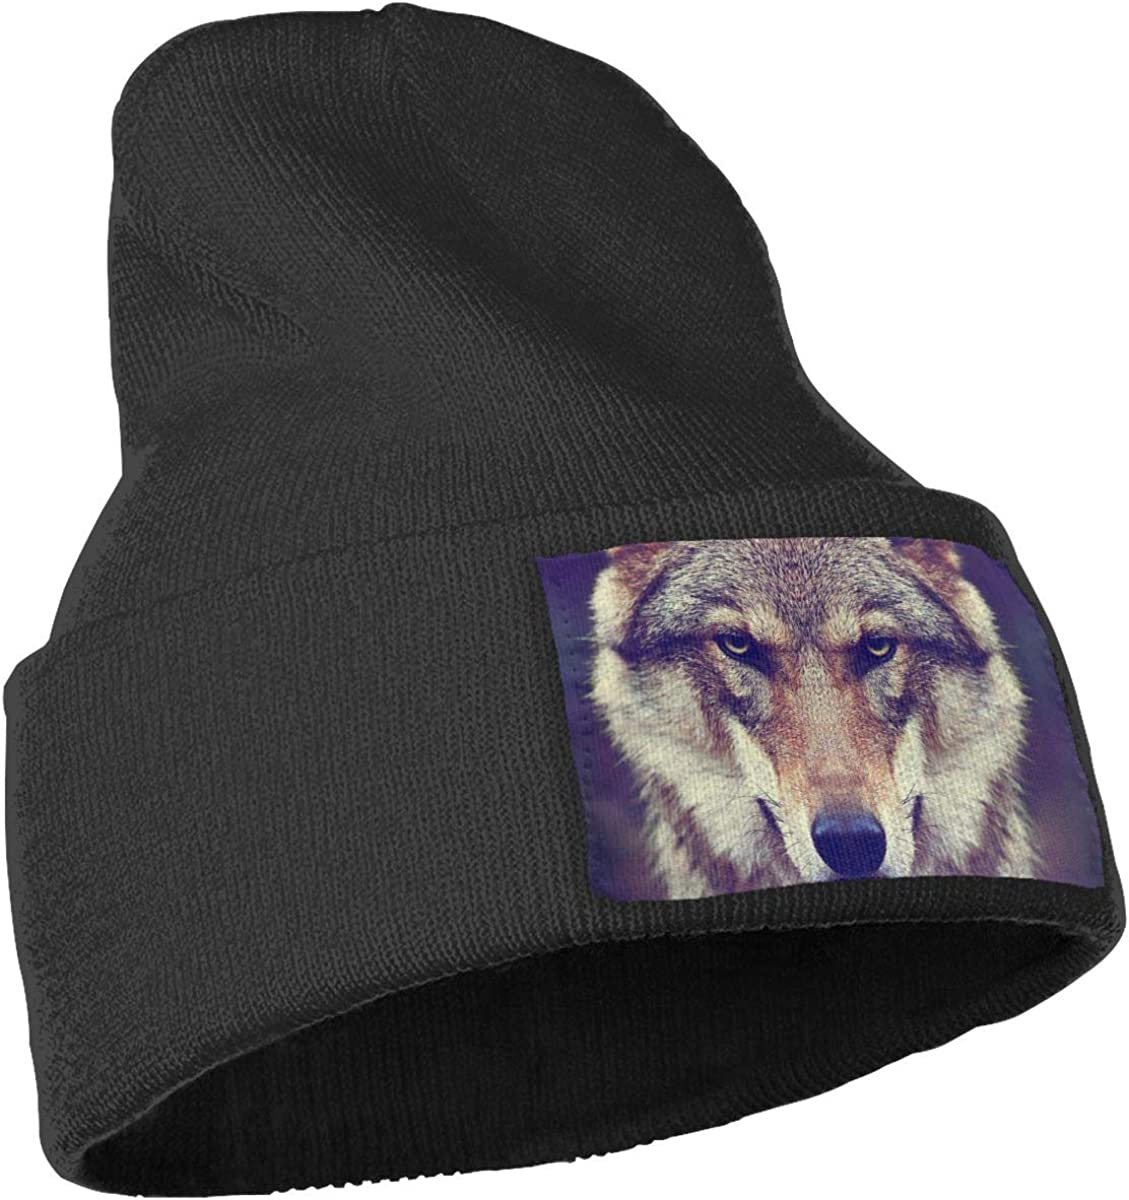 Timber Wolf Hat for Men and Women Winter Warm Hats Knit Slouchy Thick Skull Cap Black